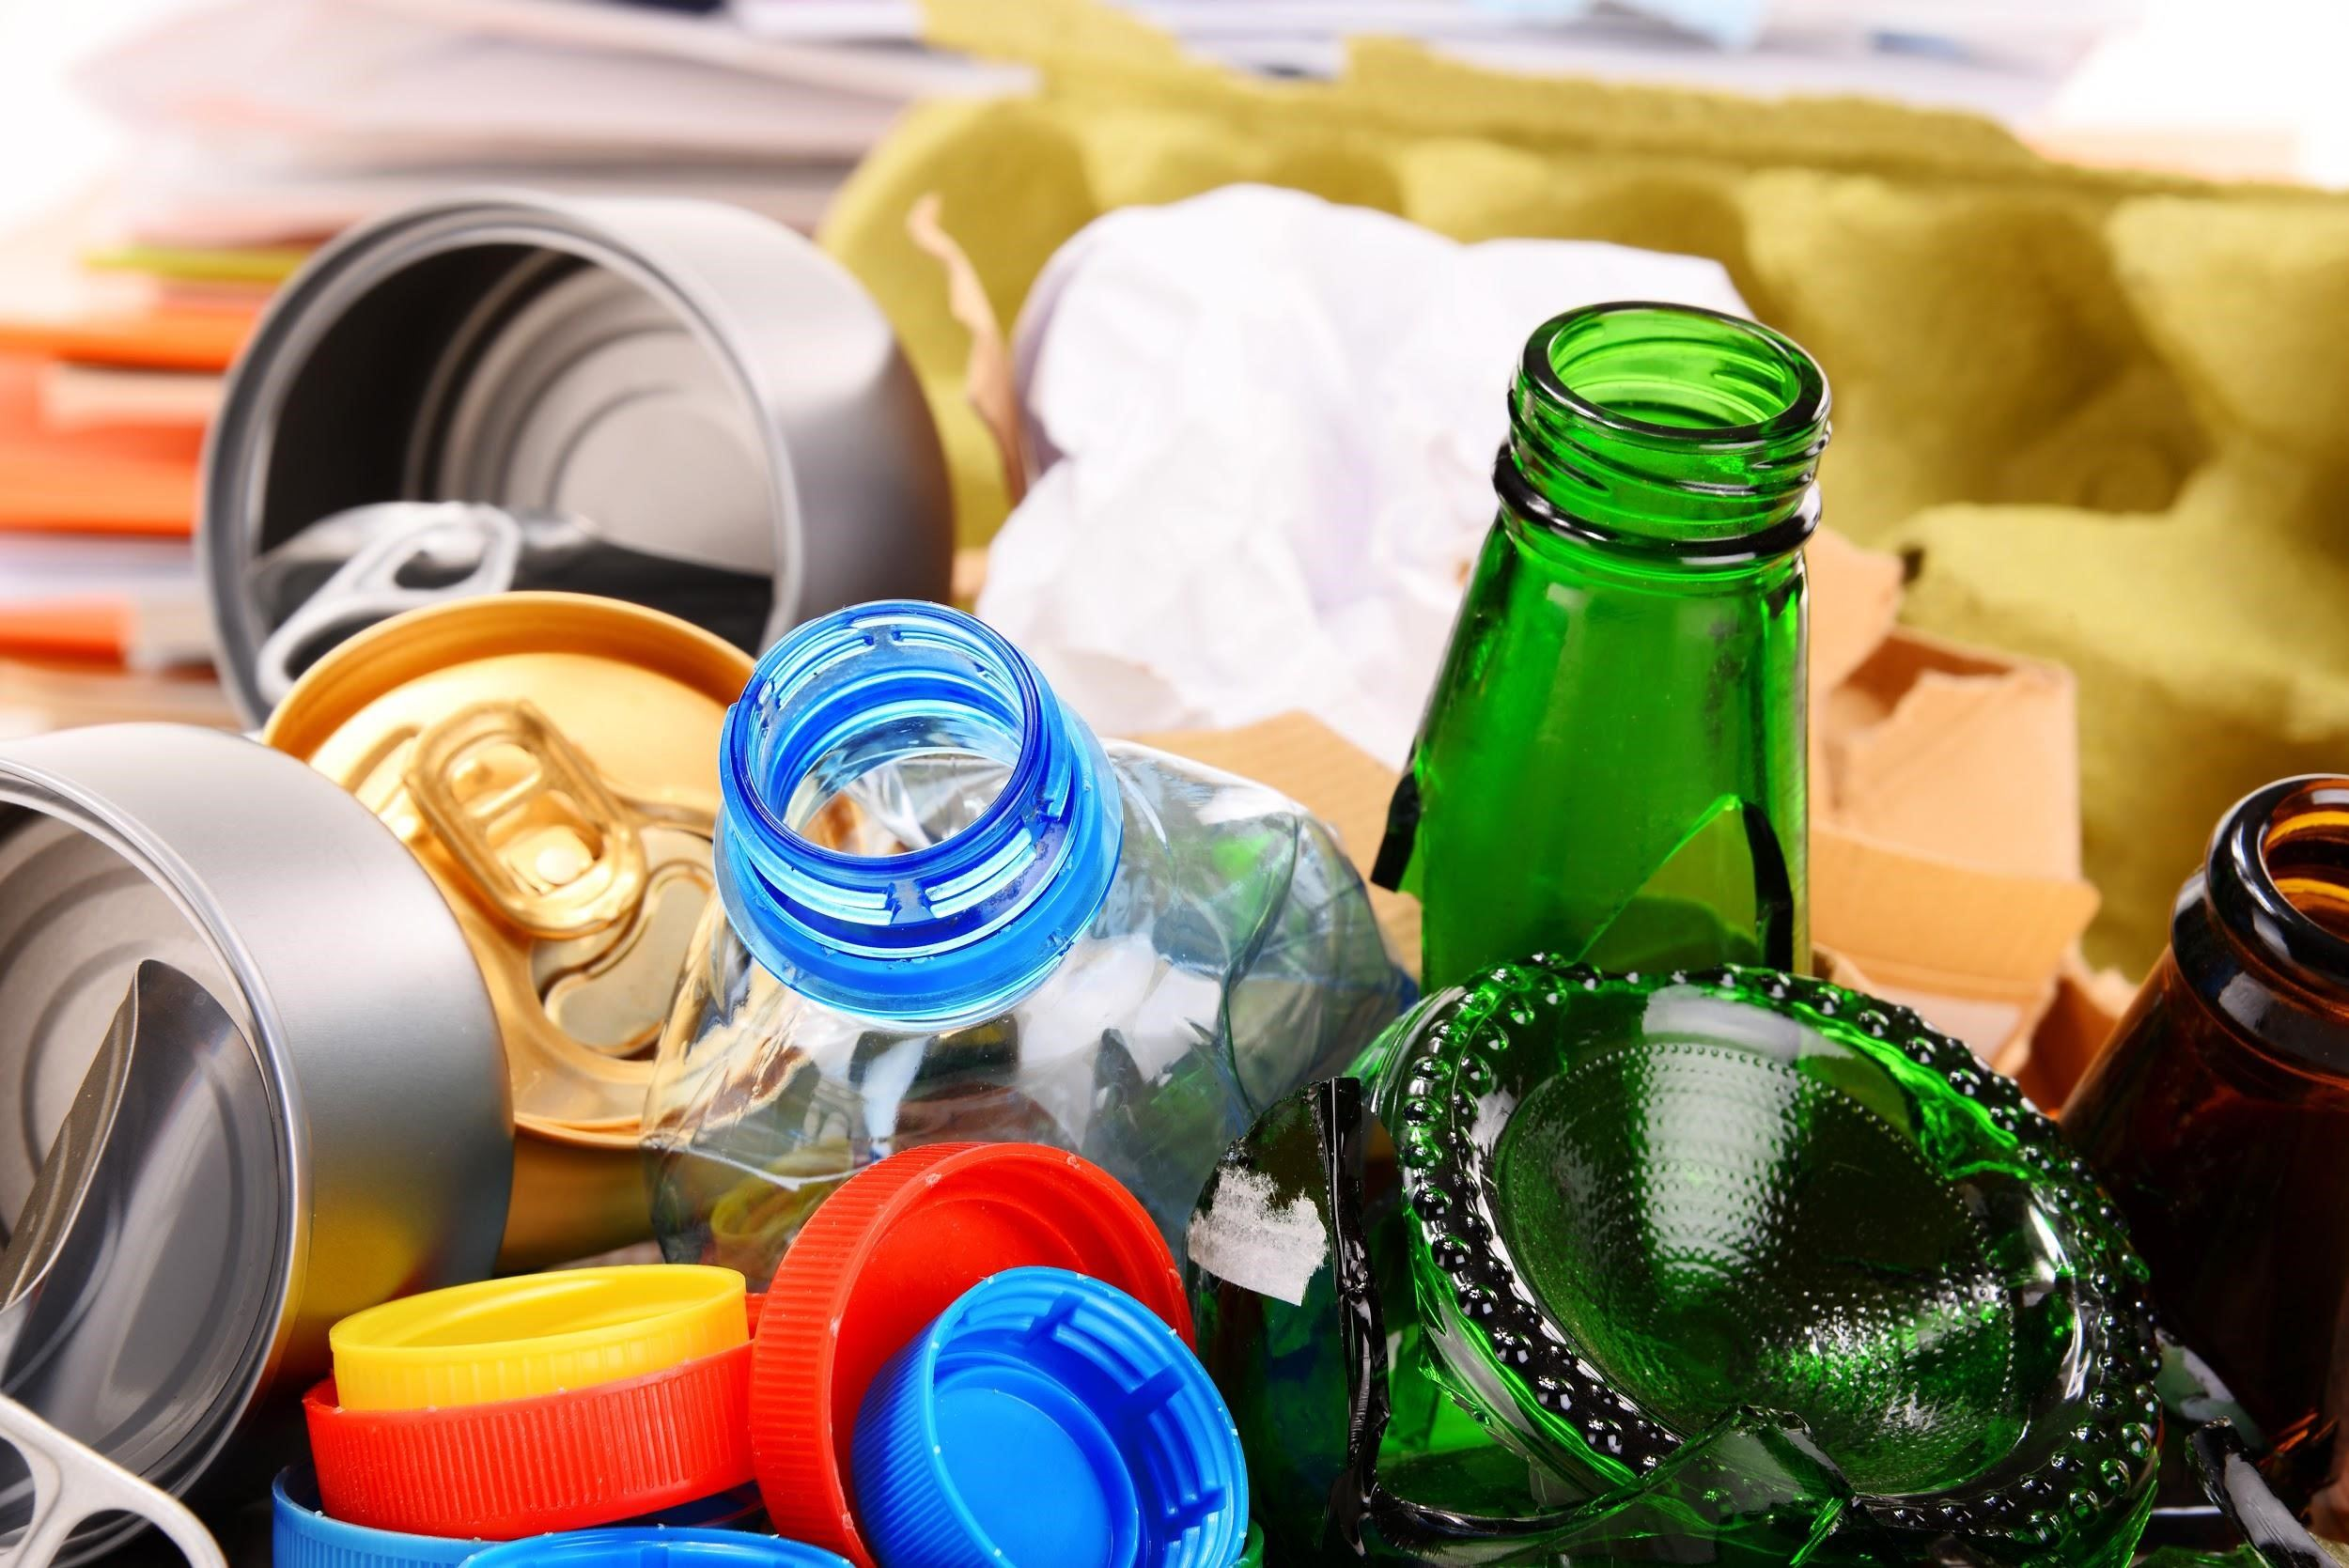 Up close of glass bottles, plastic bottles, cans, and lids